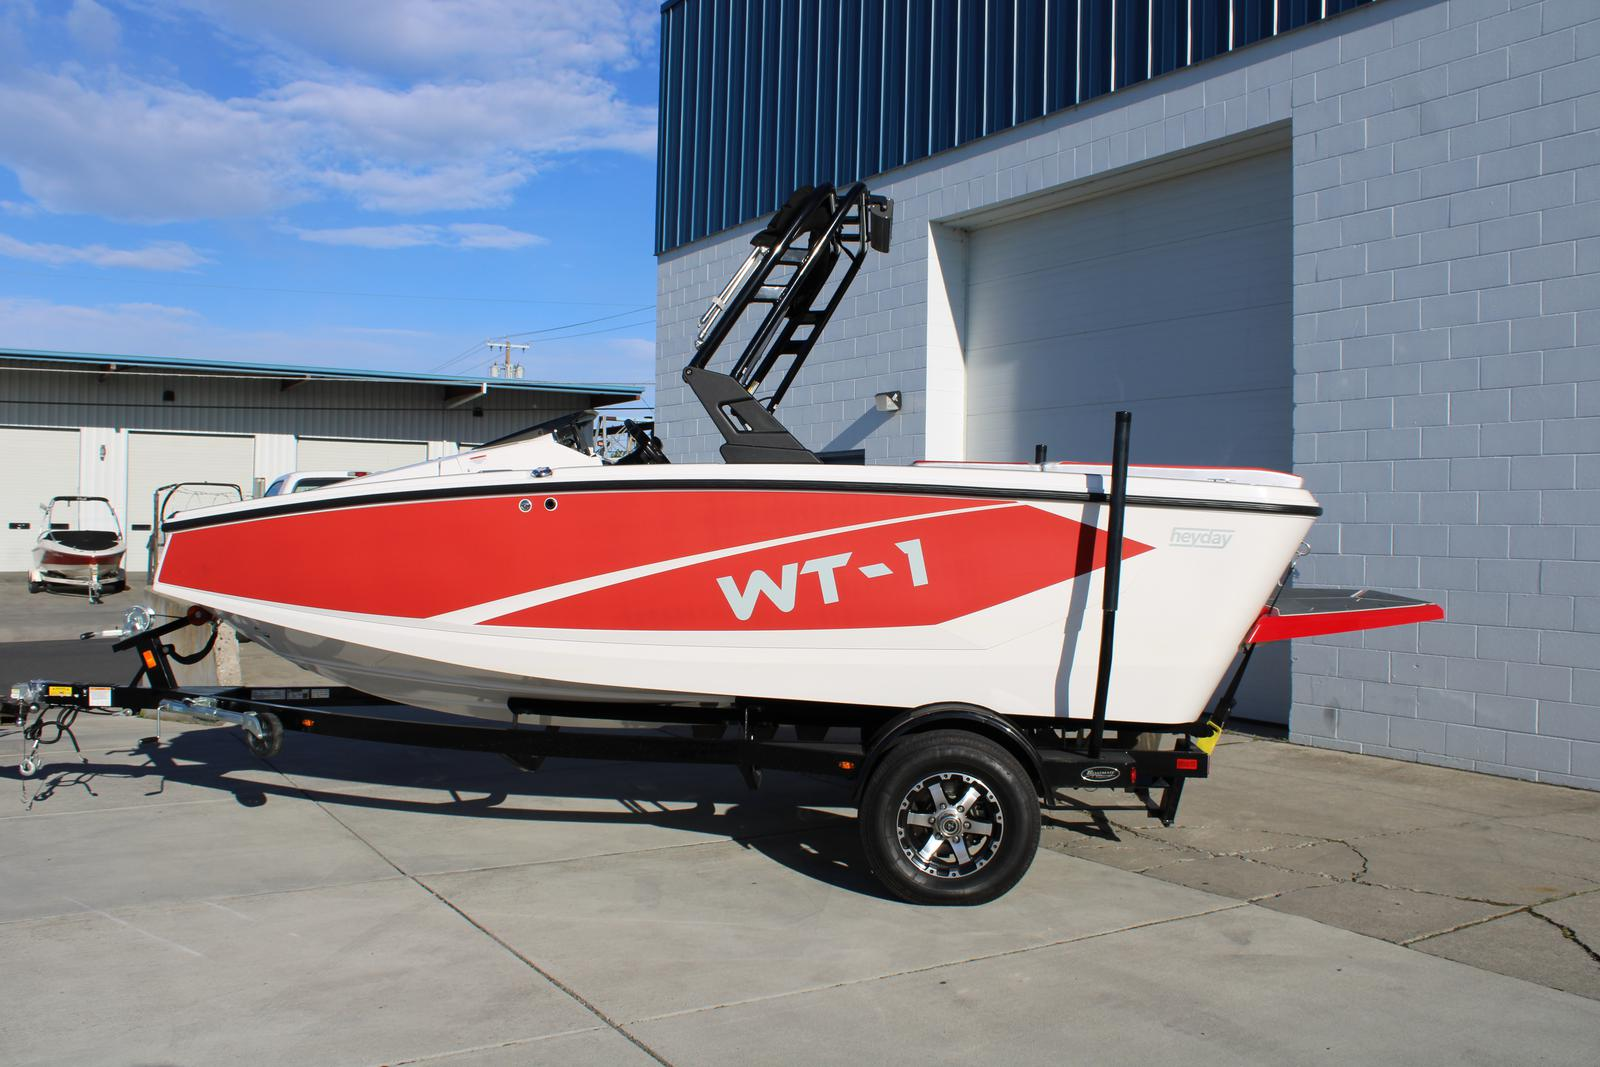 2016 Heyday boat for sale, model of the boat is WT-1 & Image # 1 of 4